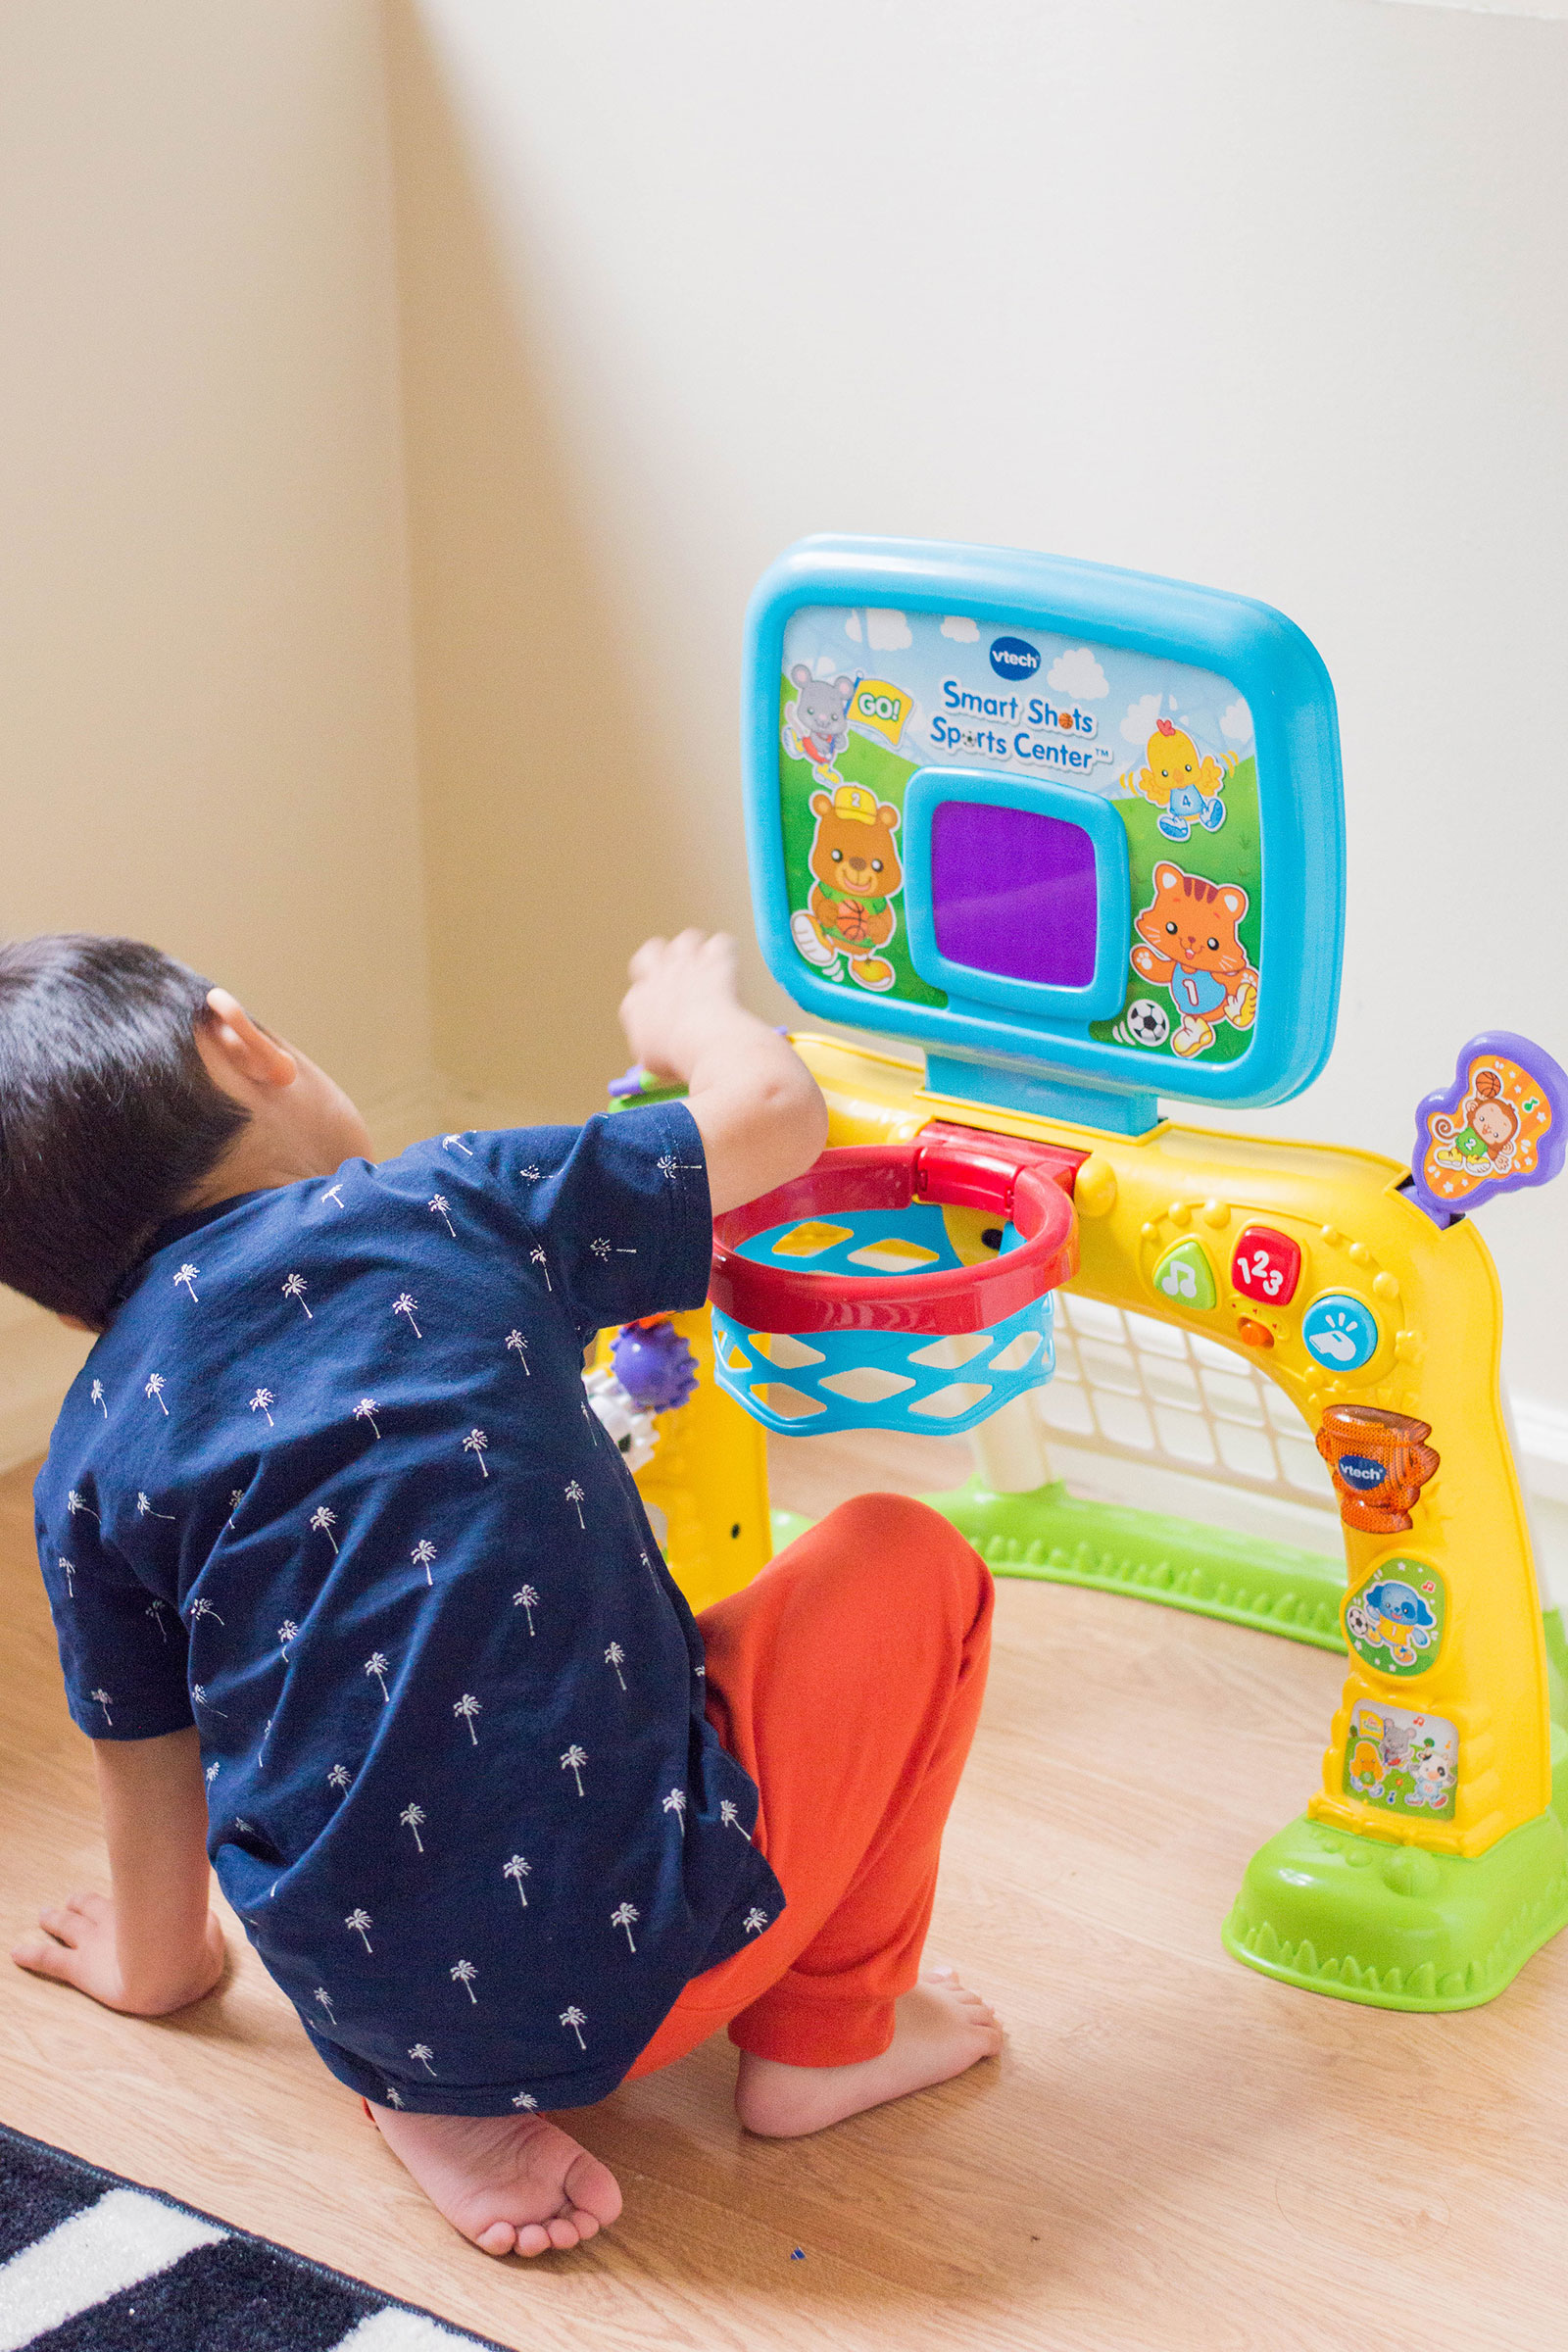 Our Top Picks for the Best Toddler Toys